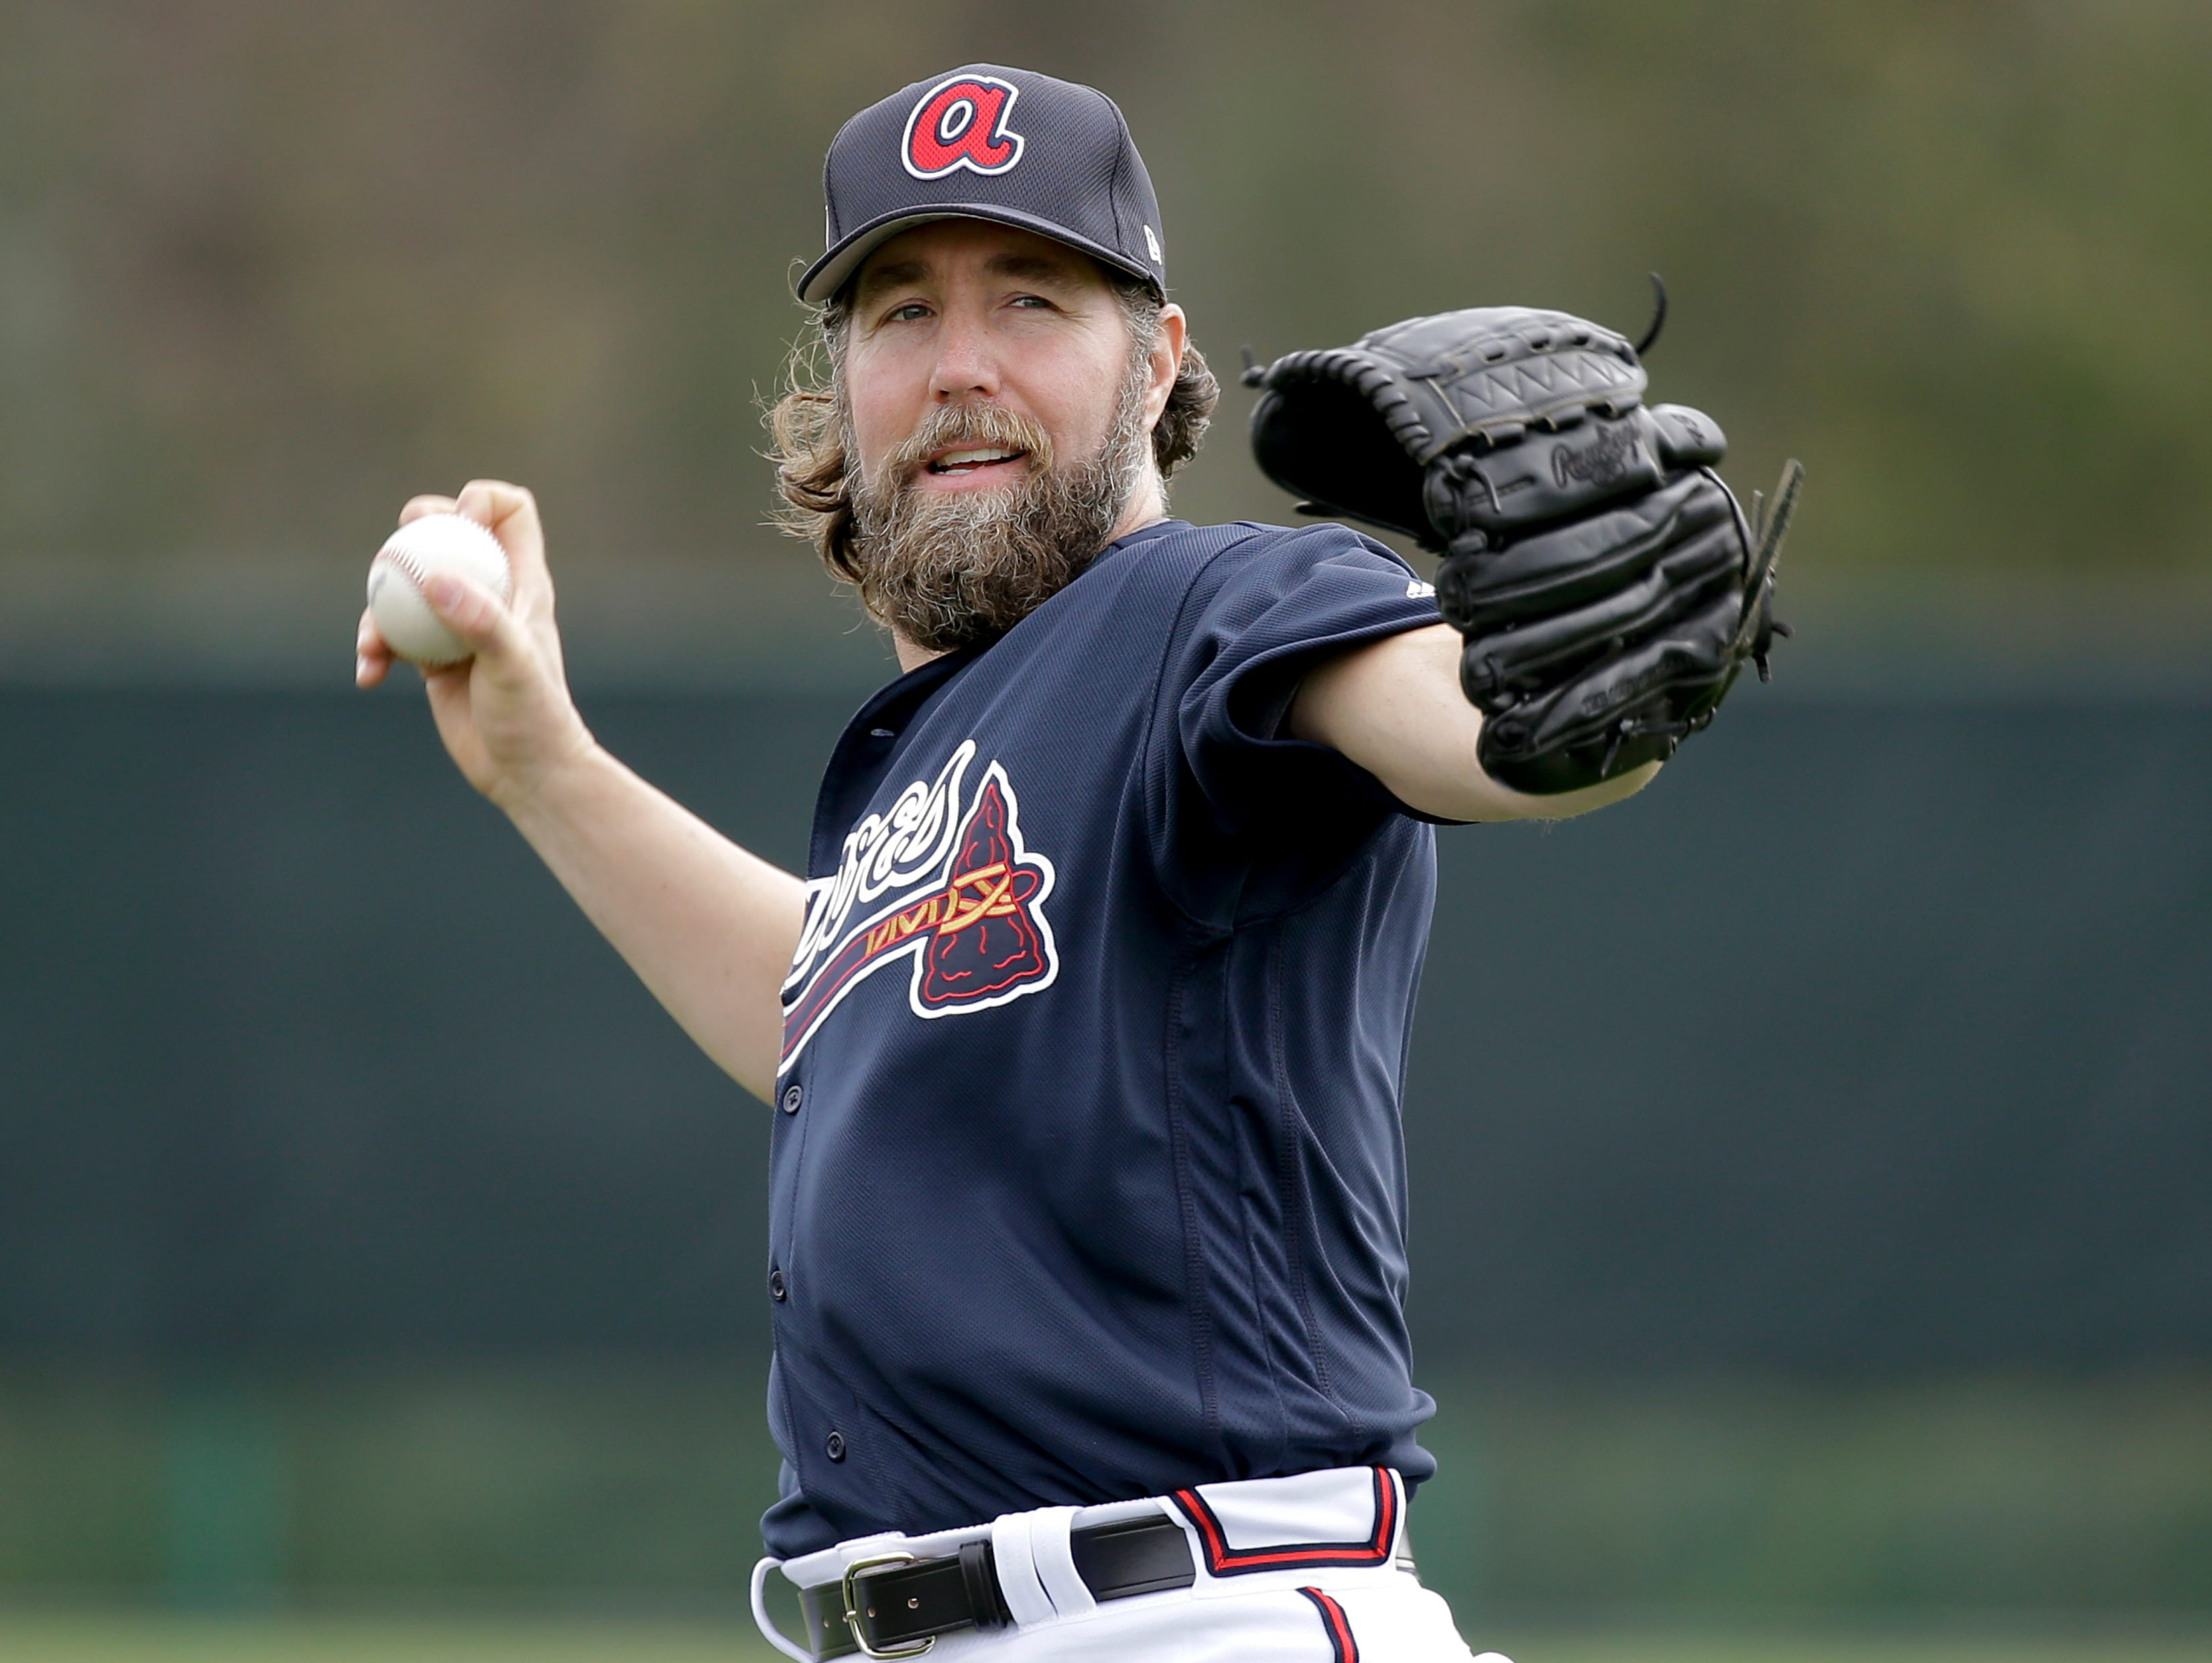 Atlanta Braves pitcher R.A. Dickey warms up at a spring training workout on Feb. 15, 2017.